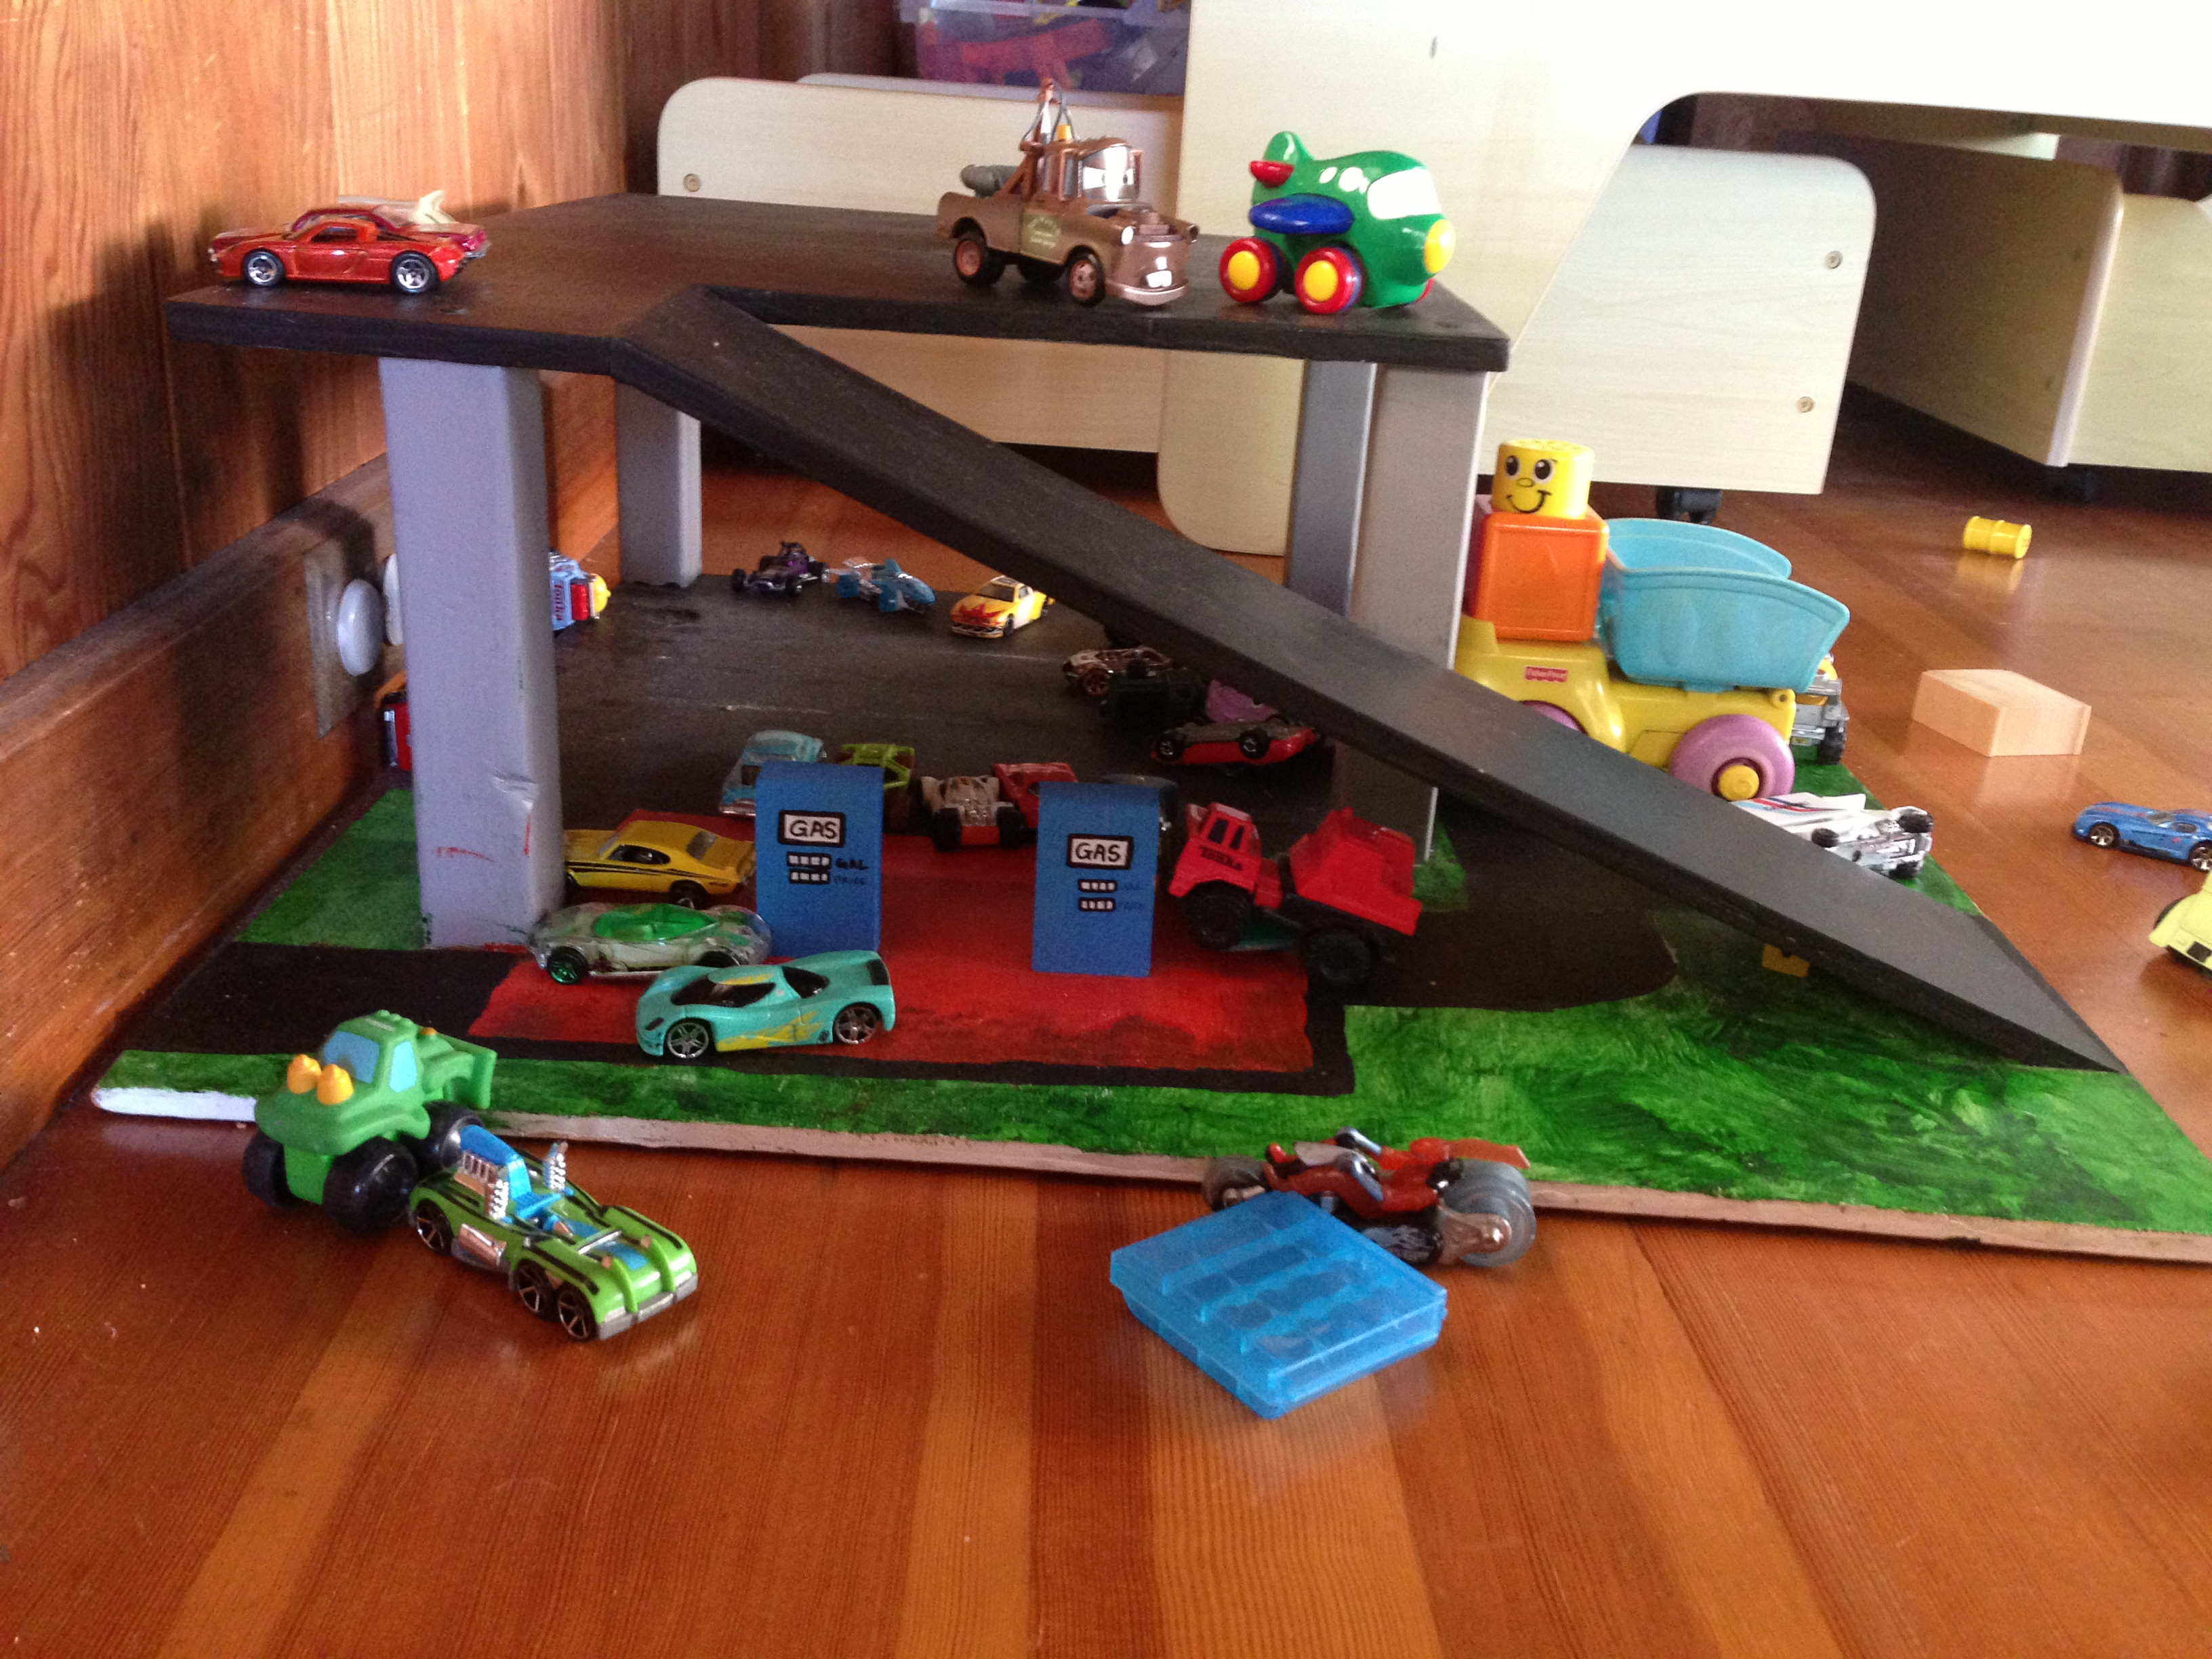 Best ideas about DIY Toy Car Garage . Save or Pin Ana White Now.